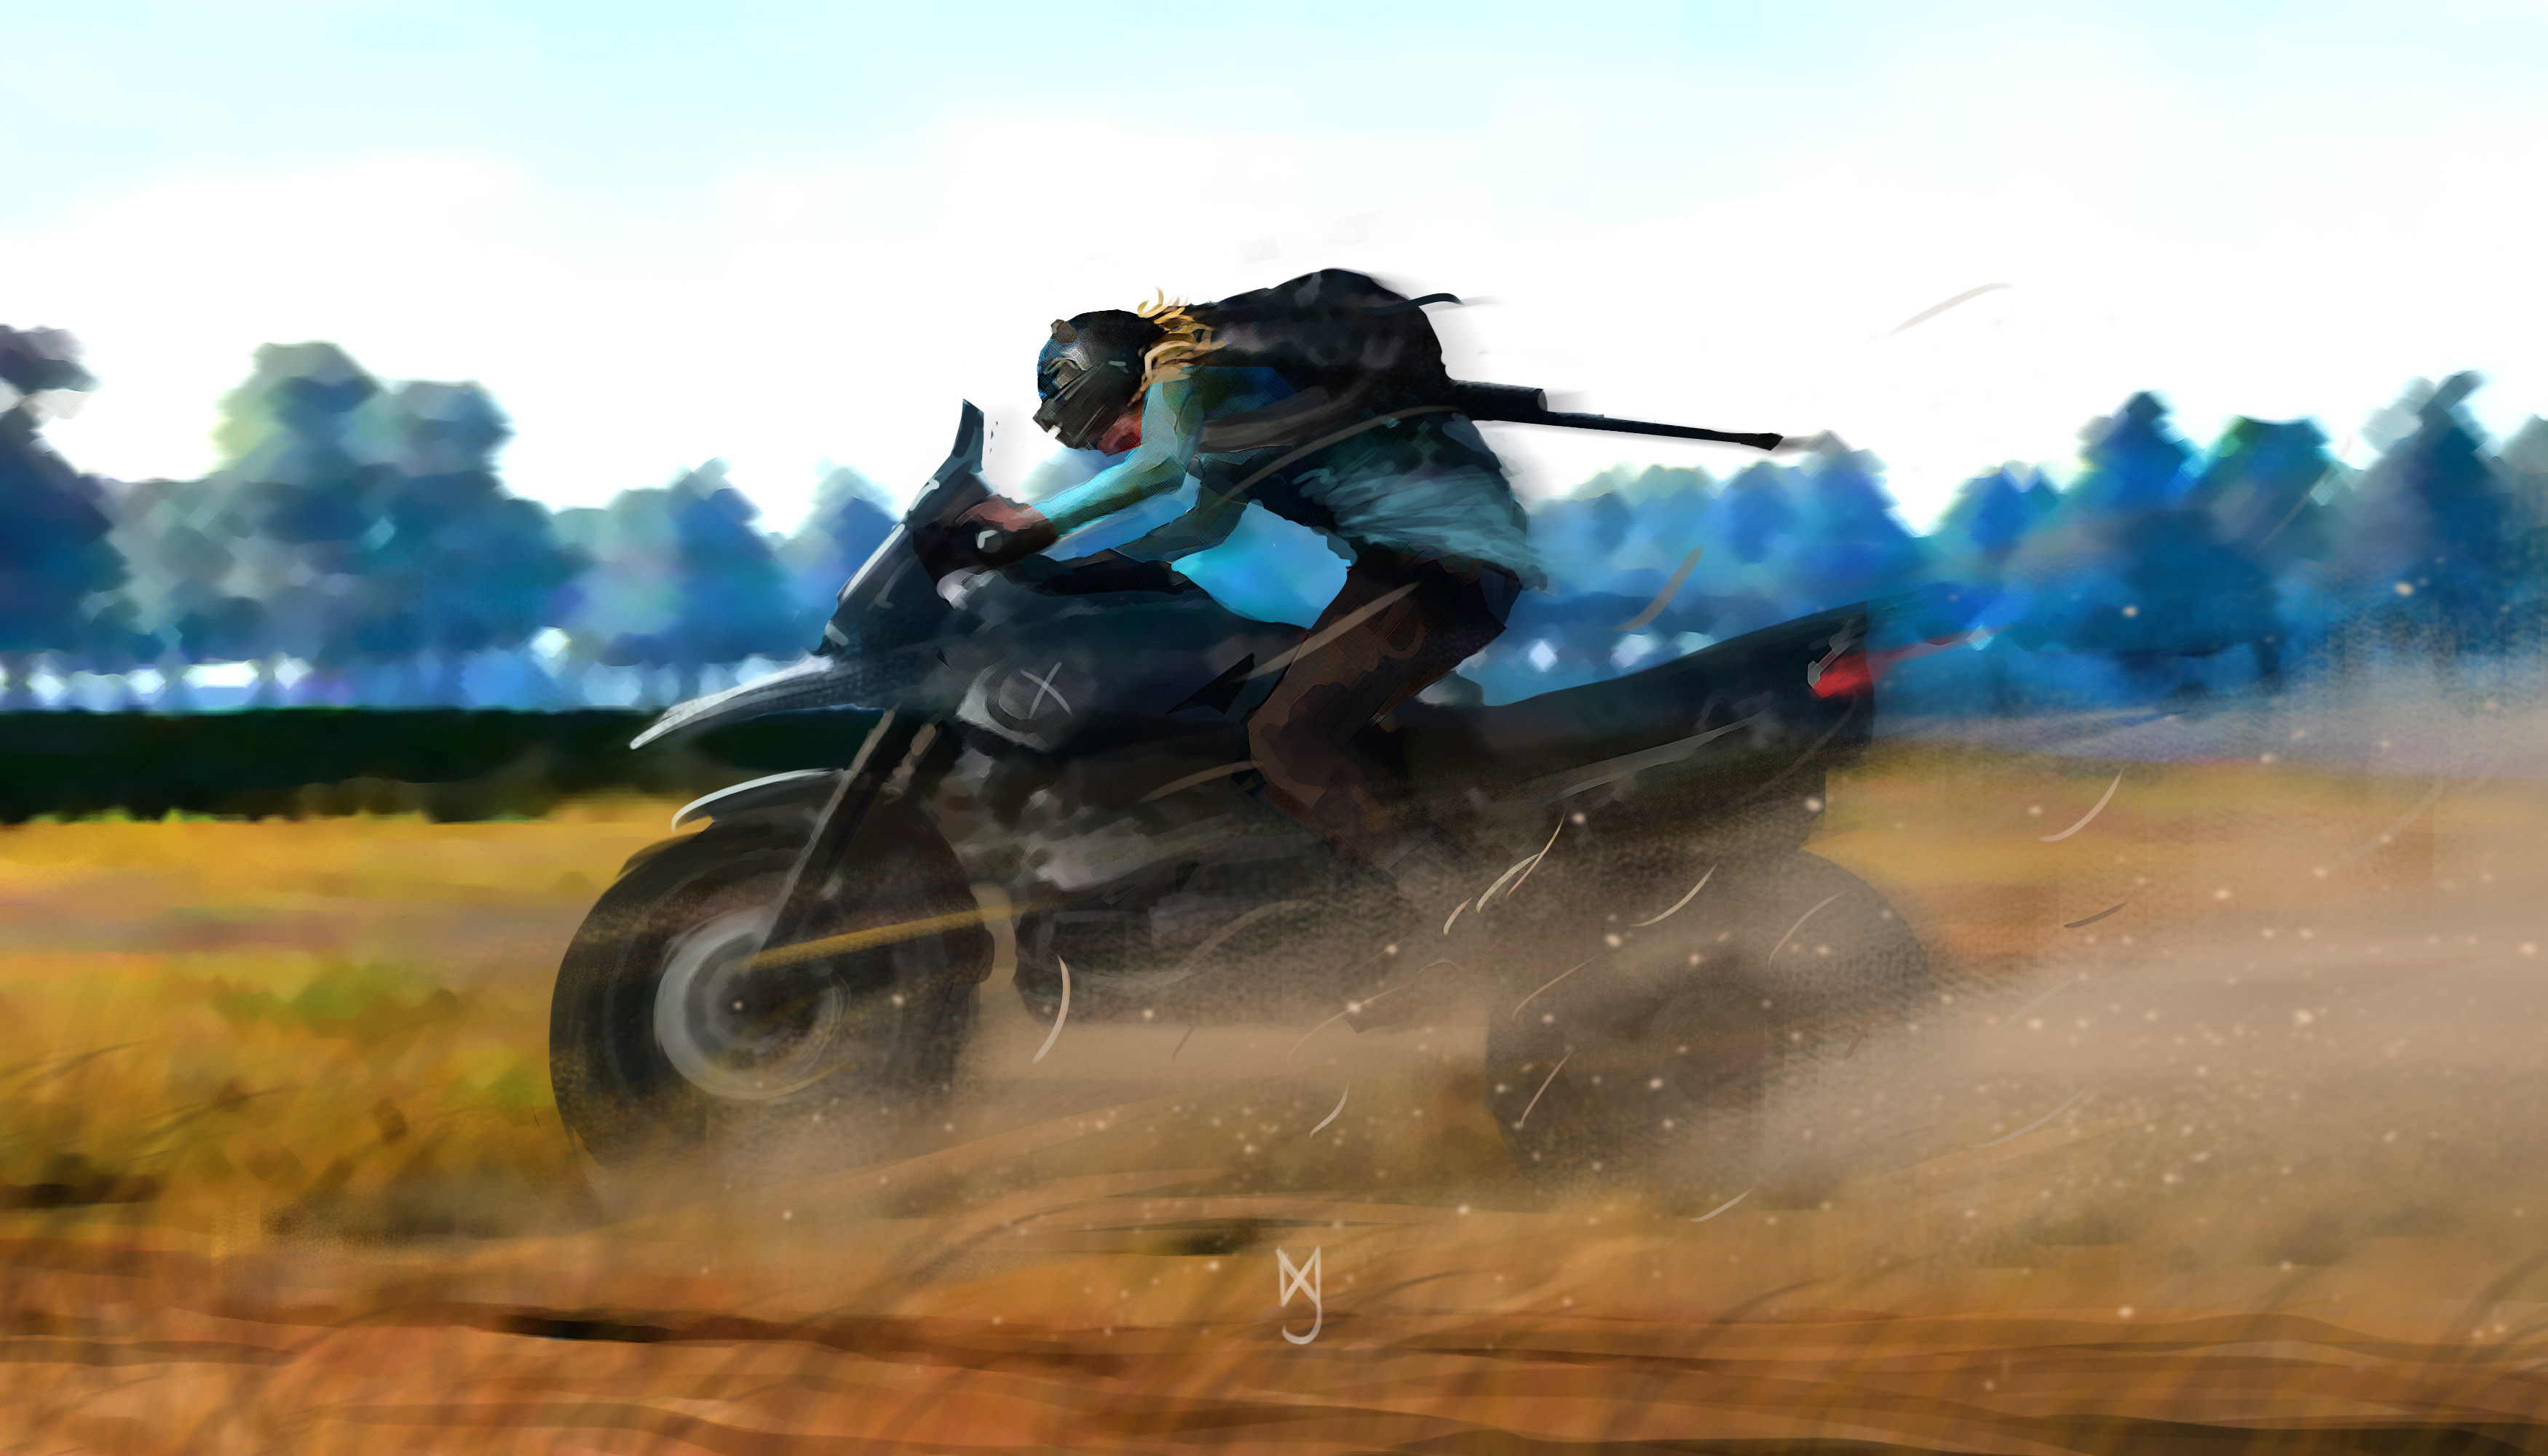 2048x1152 Pubg Bike Rider 4k 2048x1152 Resolution Hd 4k: Pubg Guy On Bike, HD Games, 4k Wallpapers, Images